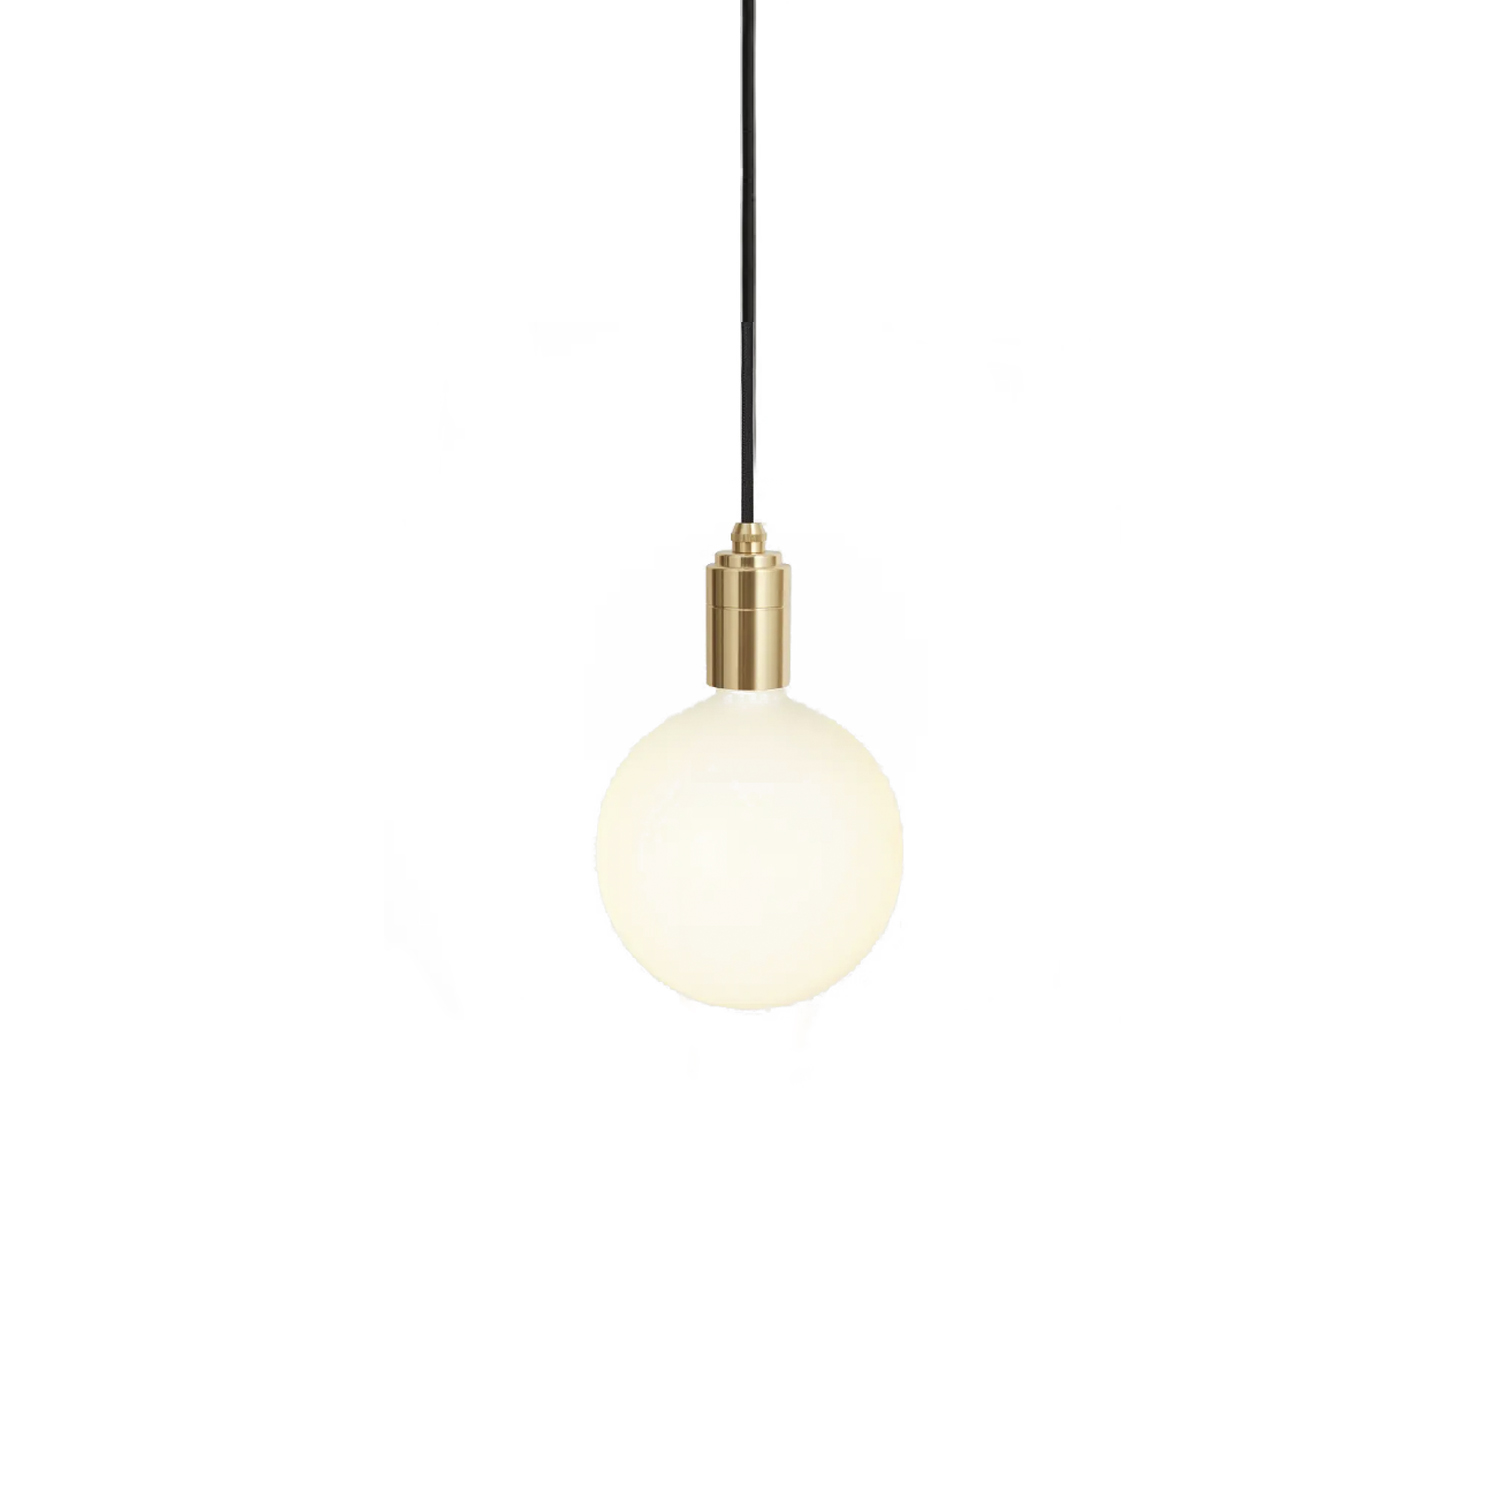 Sphere IV Pendant Light - The deliberately oversized form of the Sphere IV bulb makes for an instant statement in any interior space.  The bold size and stylish, matte white finish draw the eye when turned off, while providing high performance and perfect dimming when turned on.  Paired with one of our Walnut, Brass or Graphite pendants, this combination is an ideal solution for a single ceiling light or matched with multiples to make a bigger impact.  Features – Dimmable – Large, spherical shape – Energy-efficient, LED technology – Dim to Warm and flicker-free behaviour – Walnut, Brass or Graphite pendant finishes – 3 metre length cord for maximum versatility   | Matter of Stuff